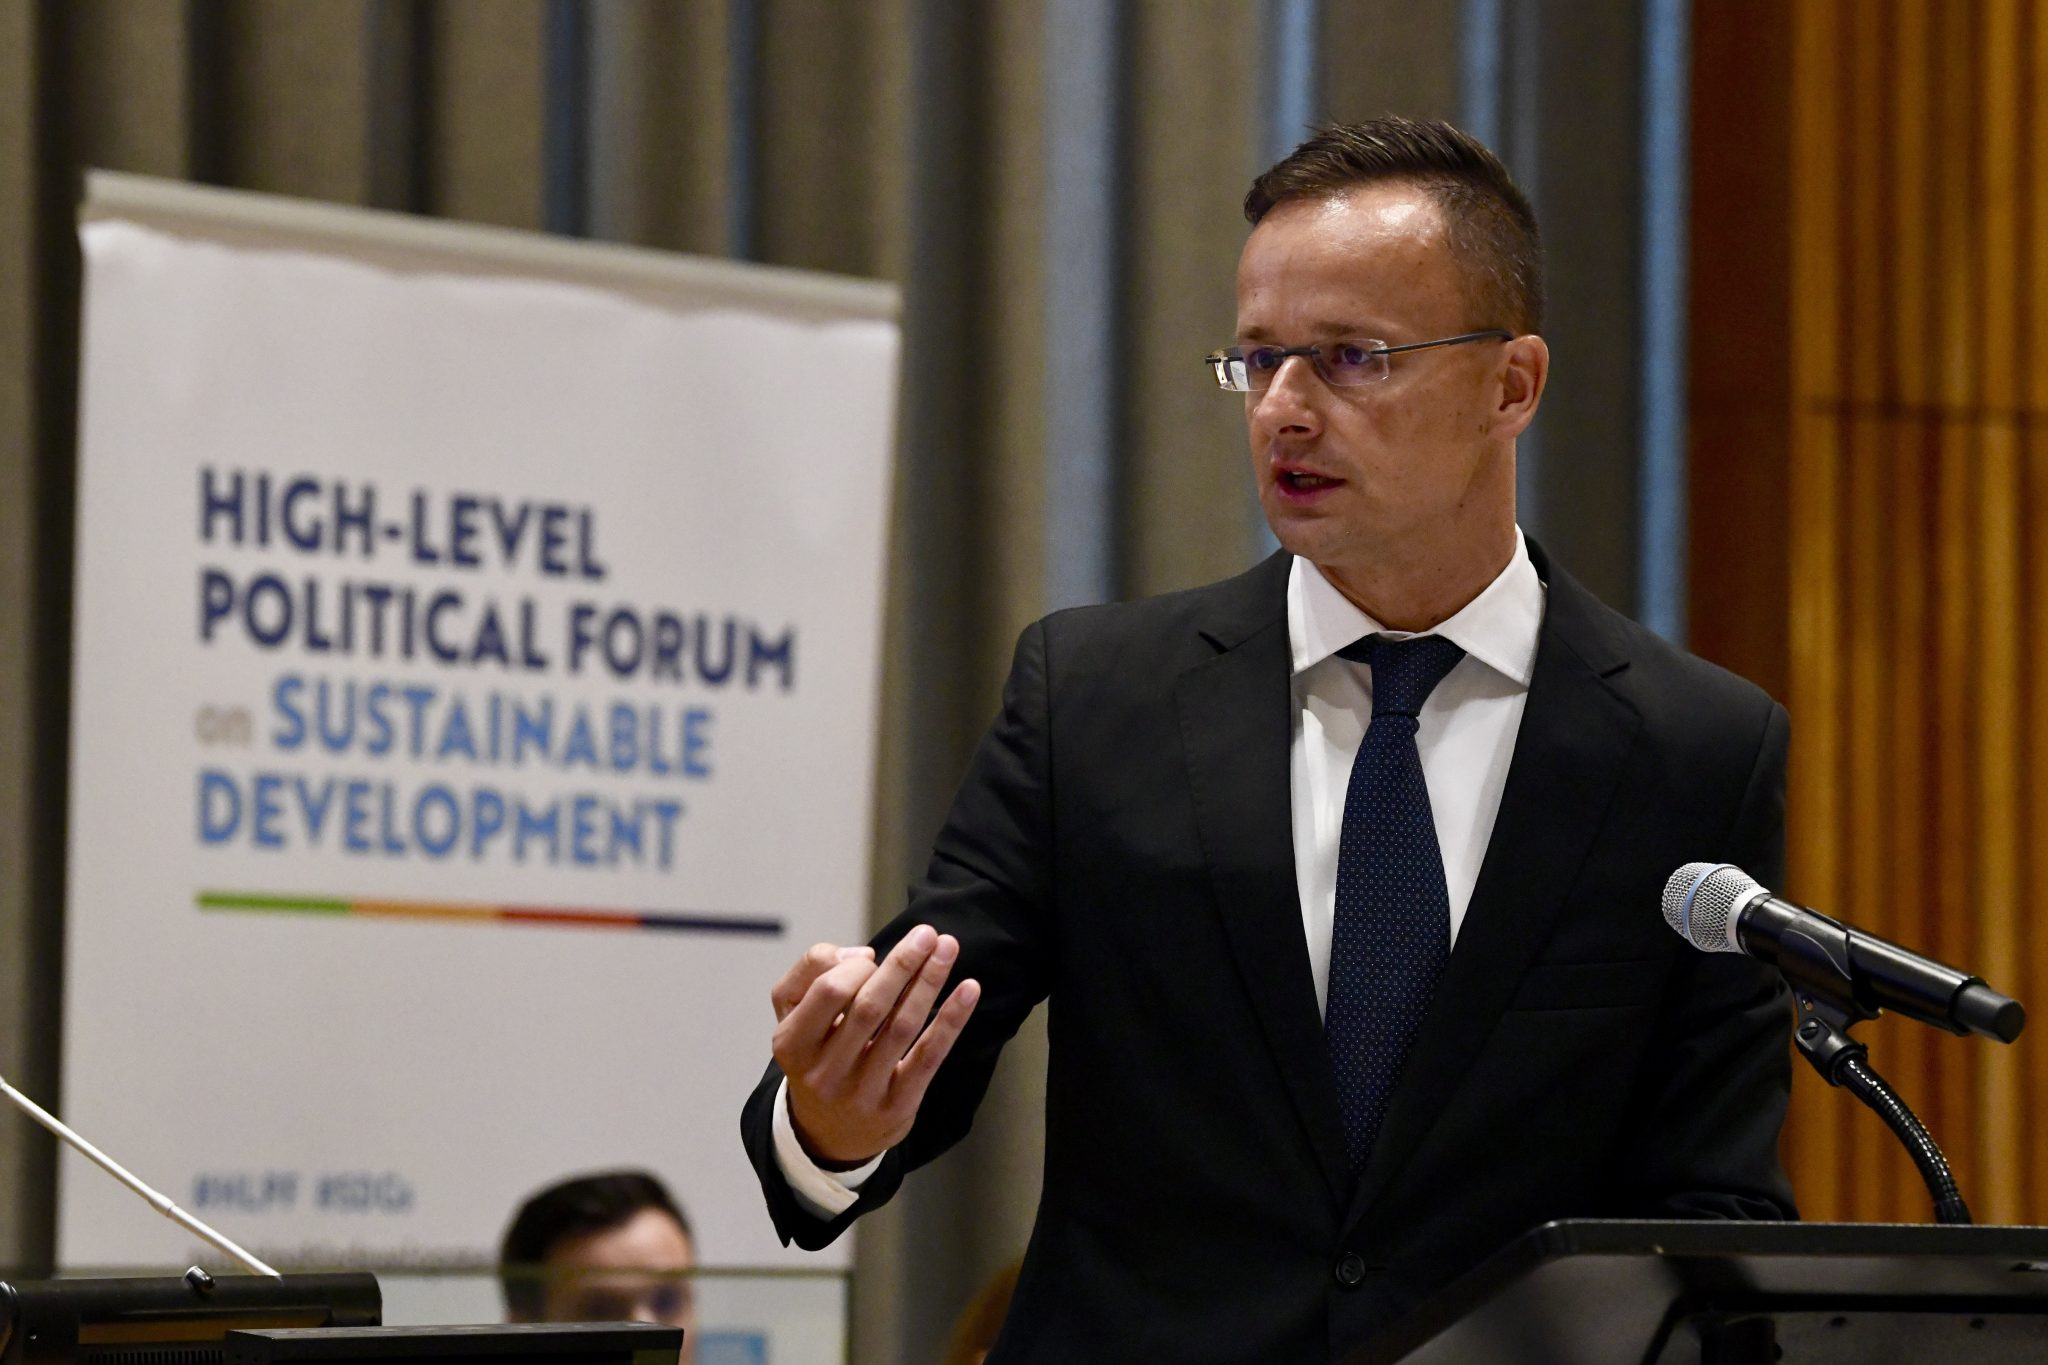 Szijjártó: Proposal to Give Illegal Migrants Equal Access to Health Care 'Unacceptable' post's picture